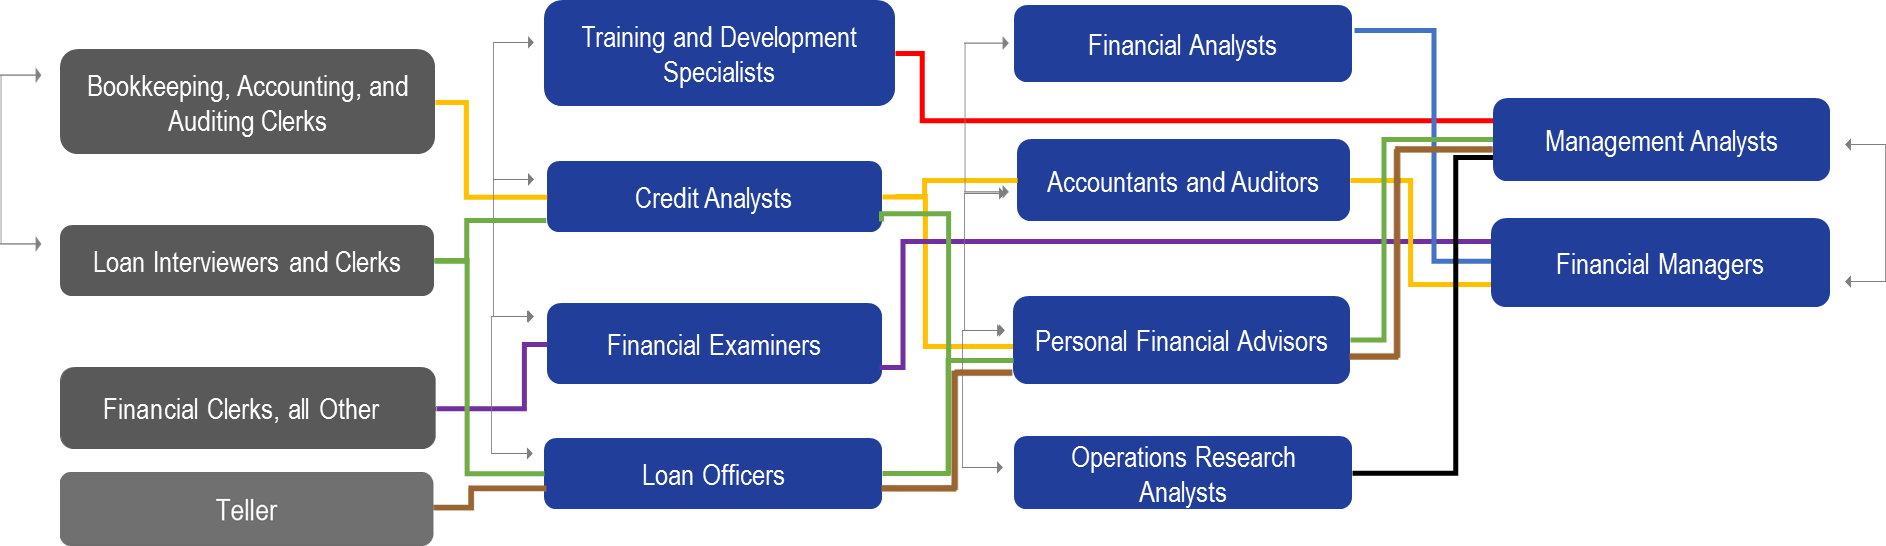 Financial Services Lattices with Occ Profiles FINAL